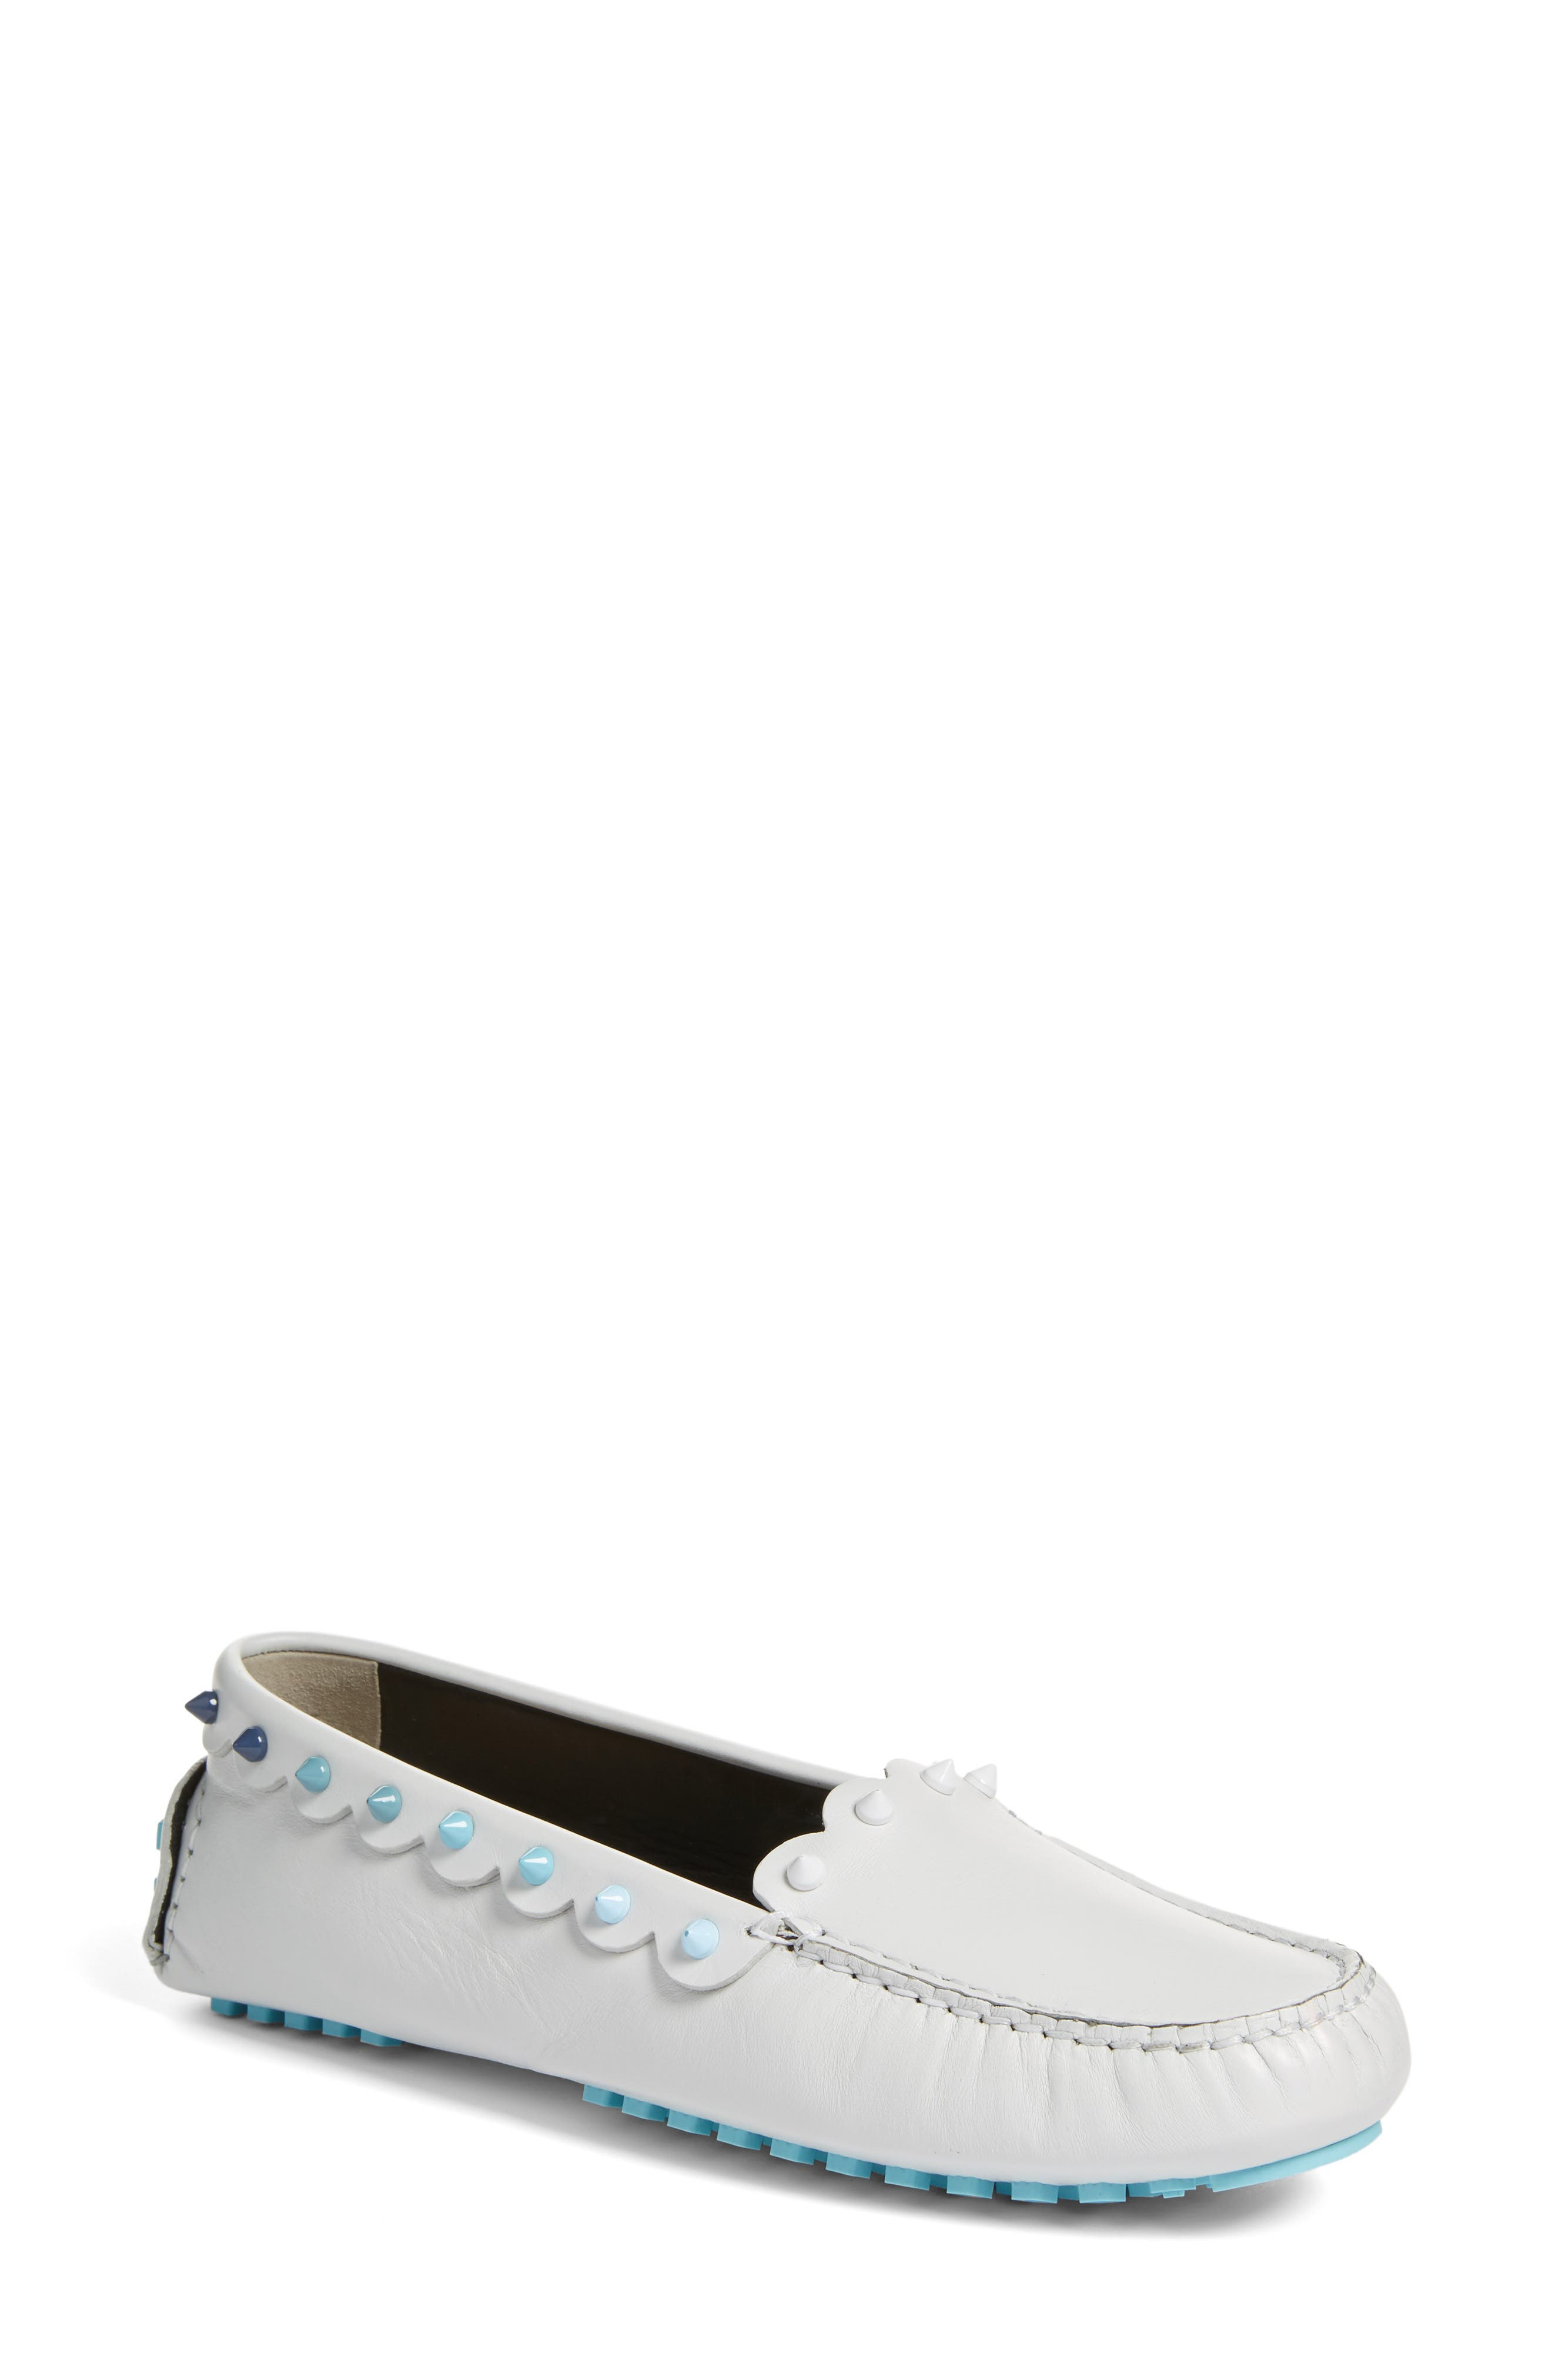 Scallop Stud Driving Moccasin,                             Main thumbnail 1, color,                             142